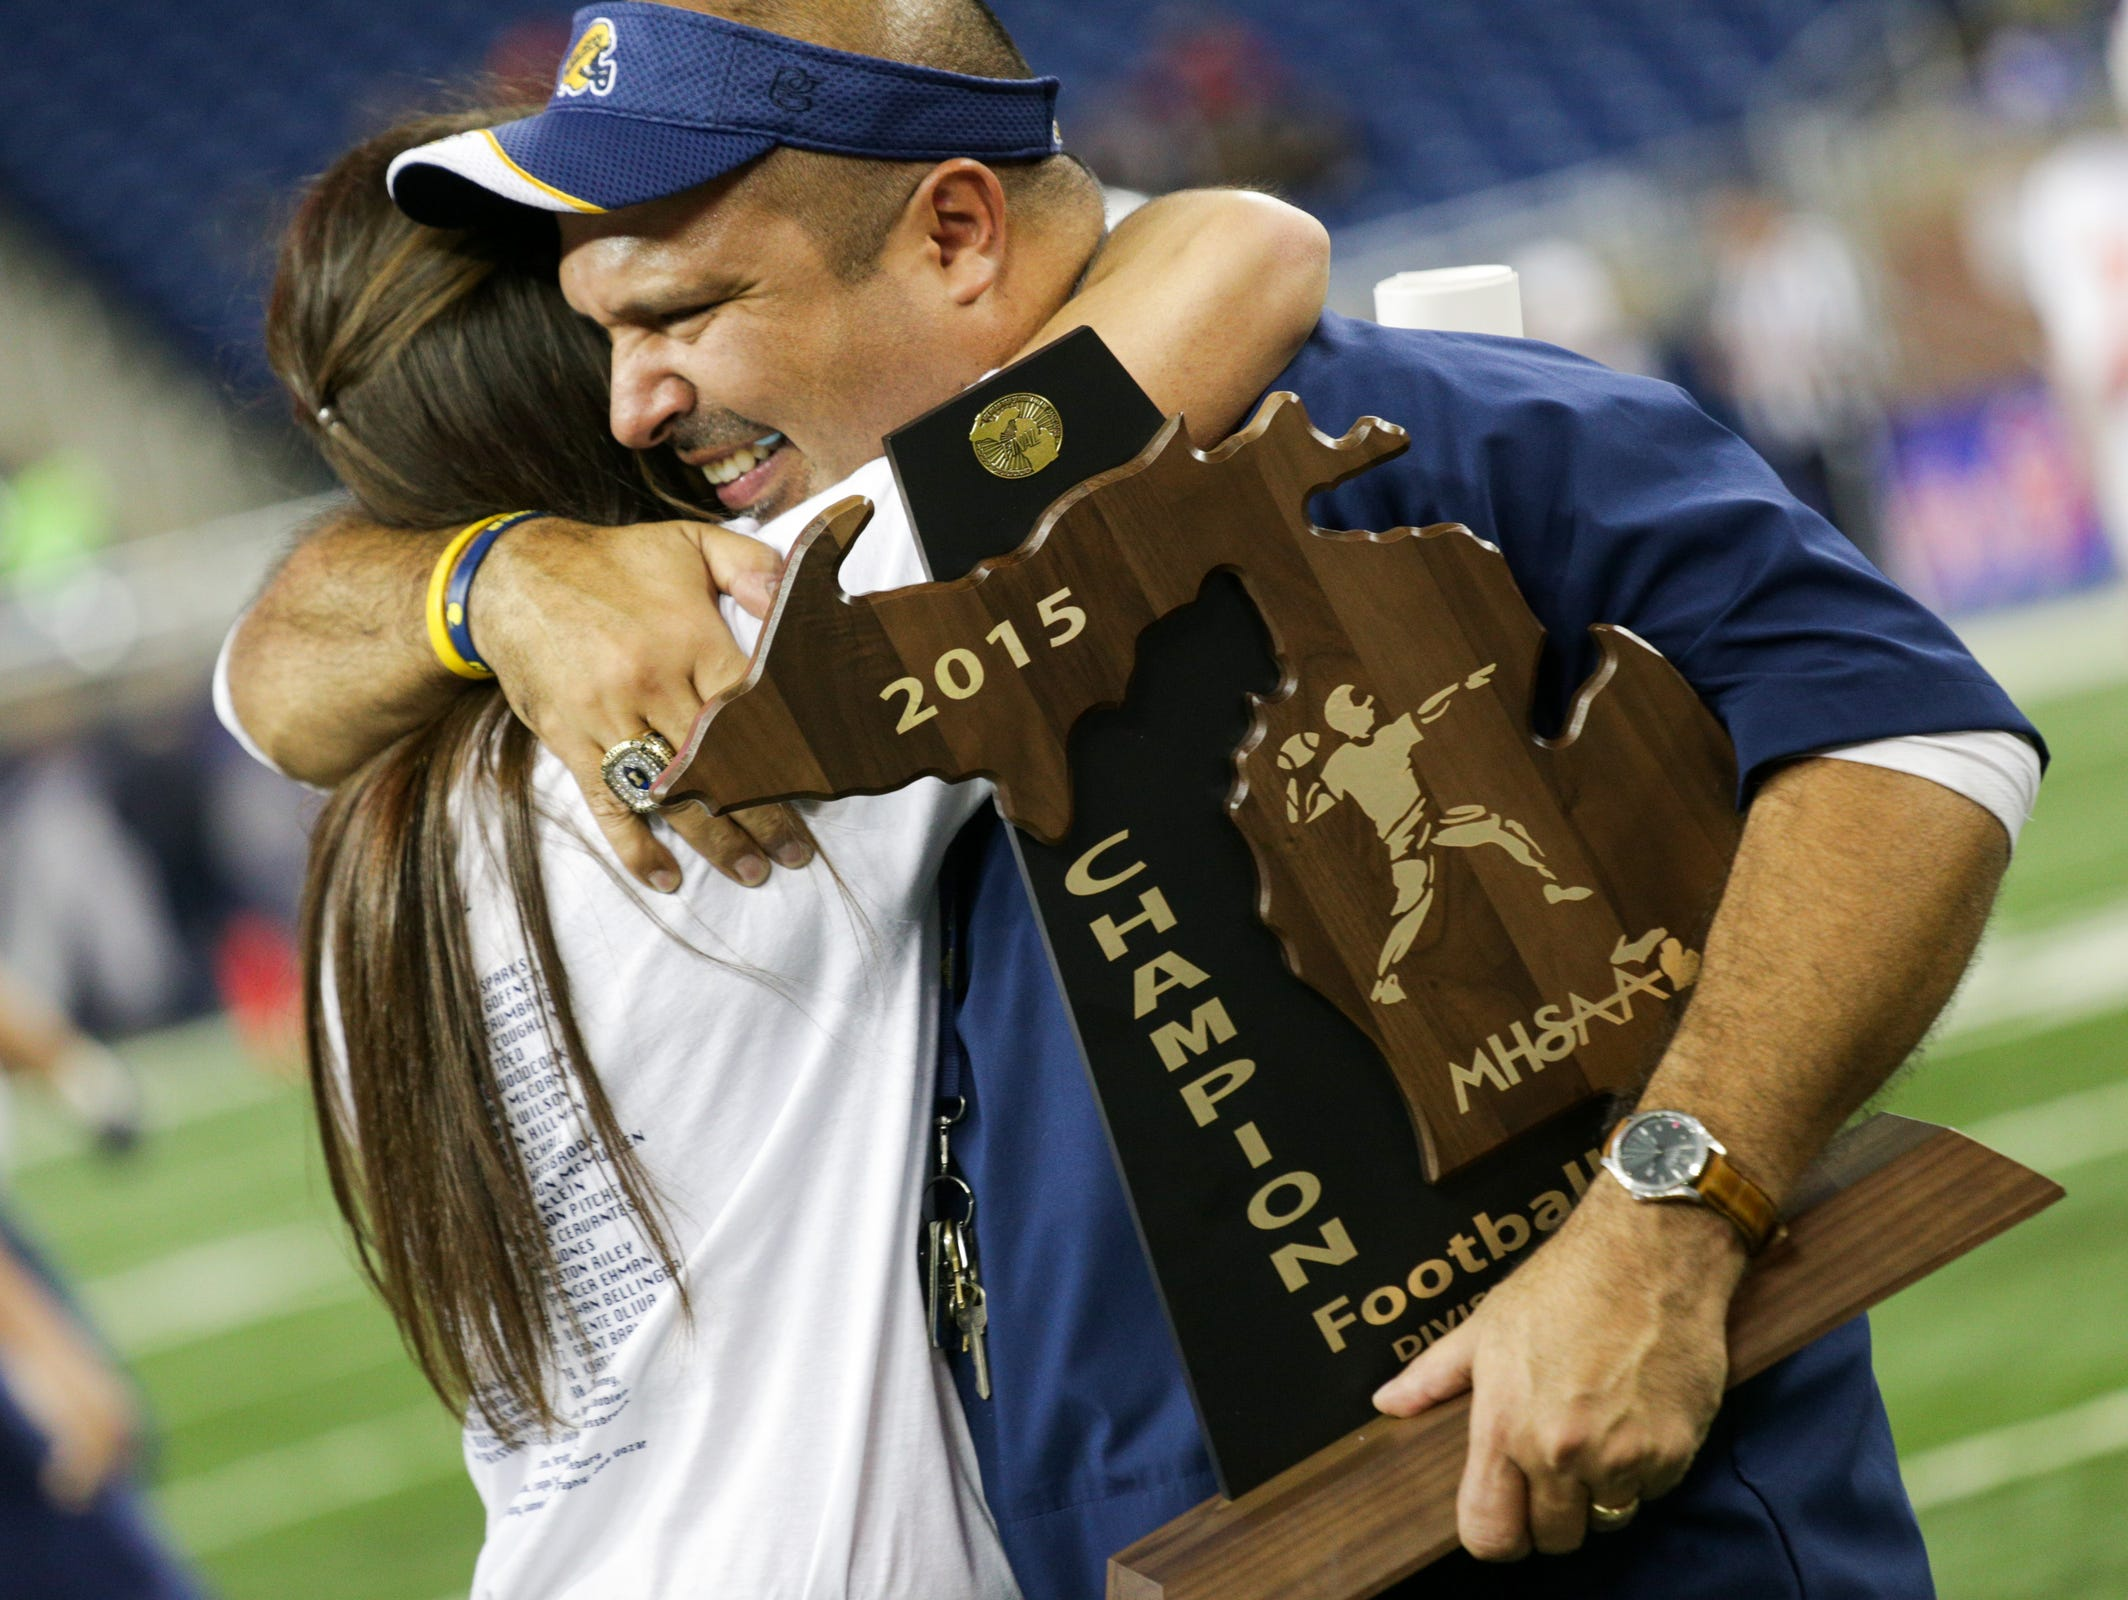 Ithaca coach Terry Hessbrook celebrates his state final win after defeating Clinton in the Division 6 final at Ford Field in Detroit on Friday, Nov. 27, 2015.